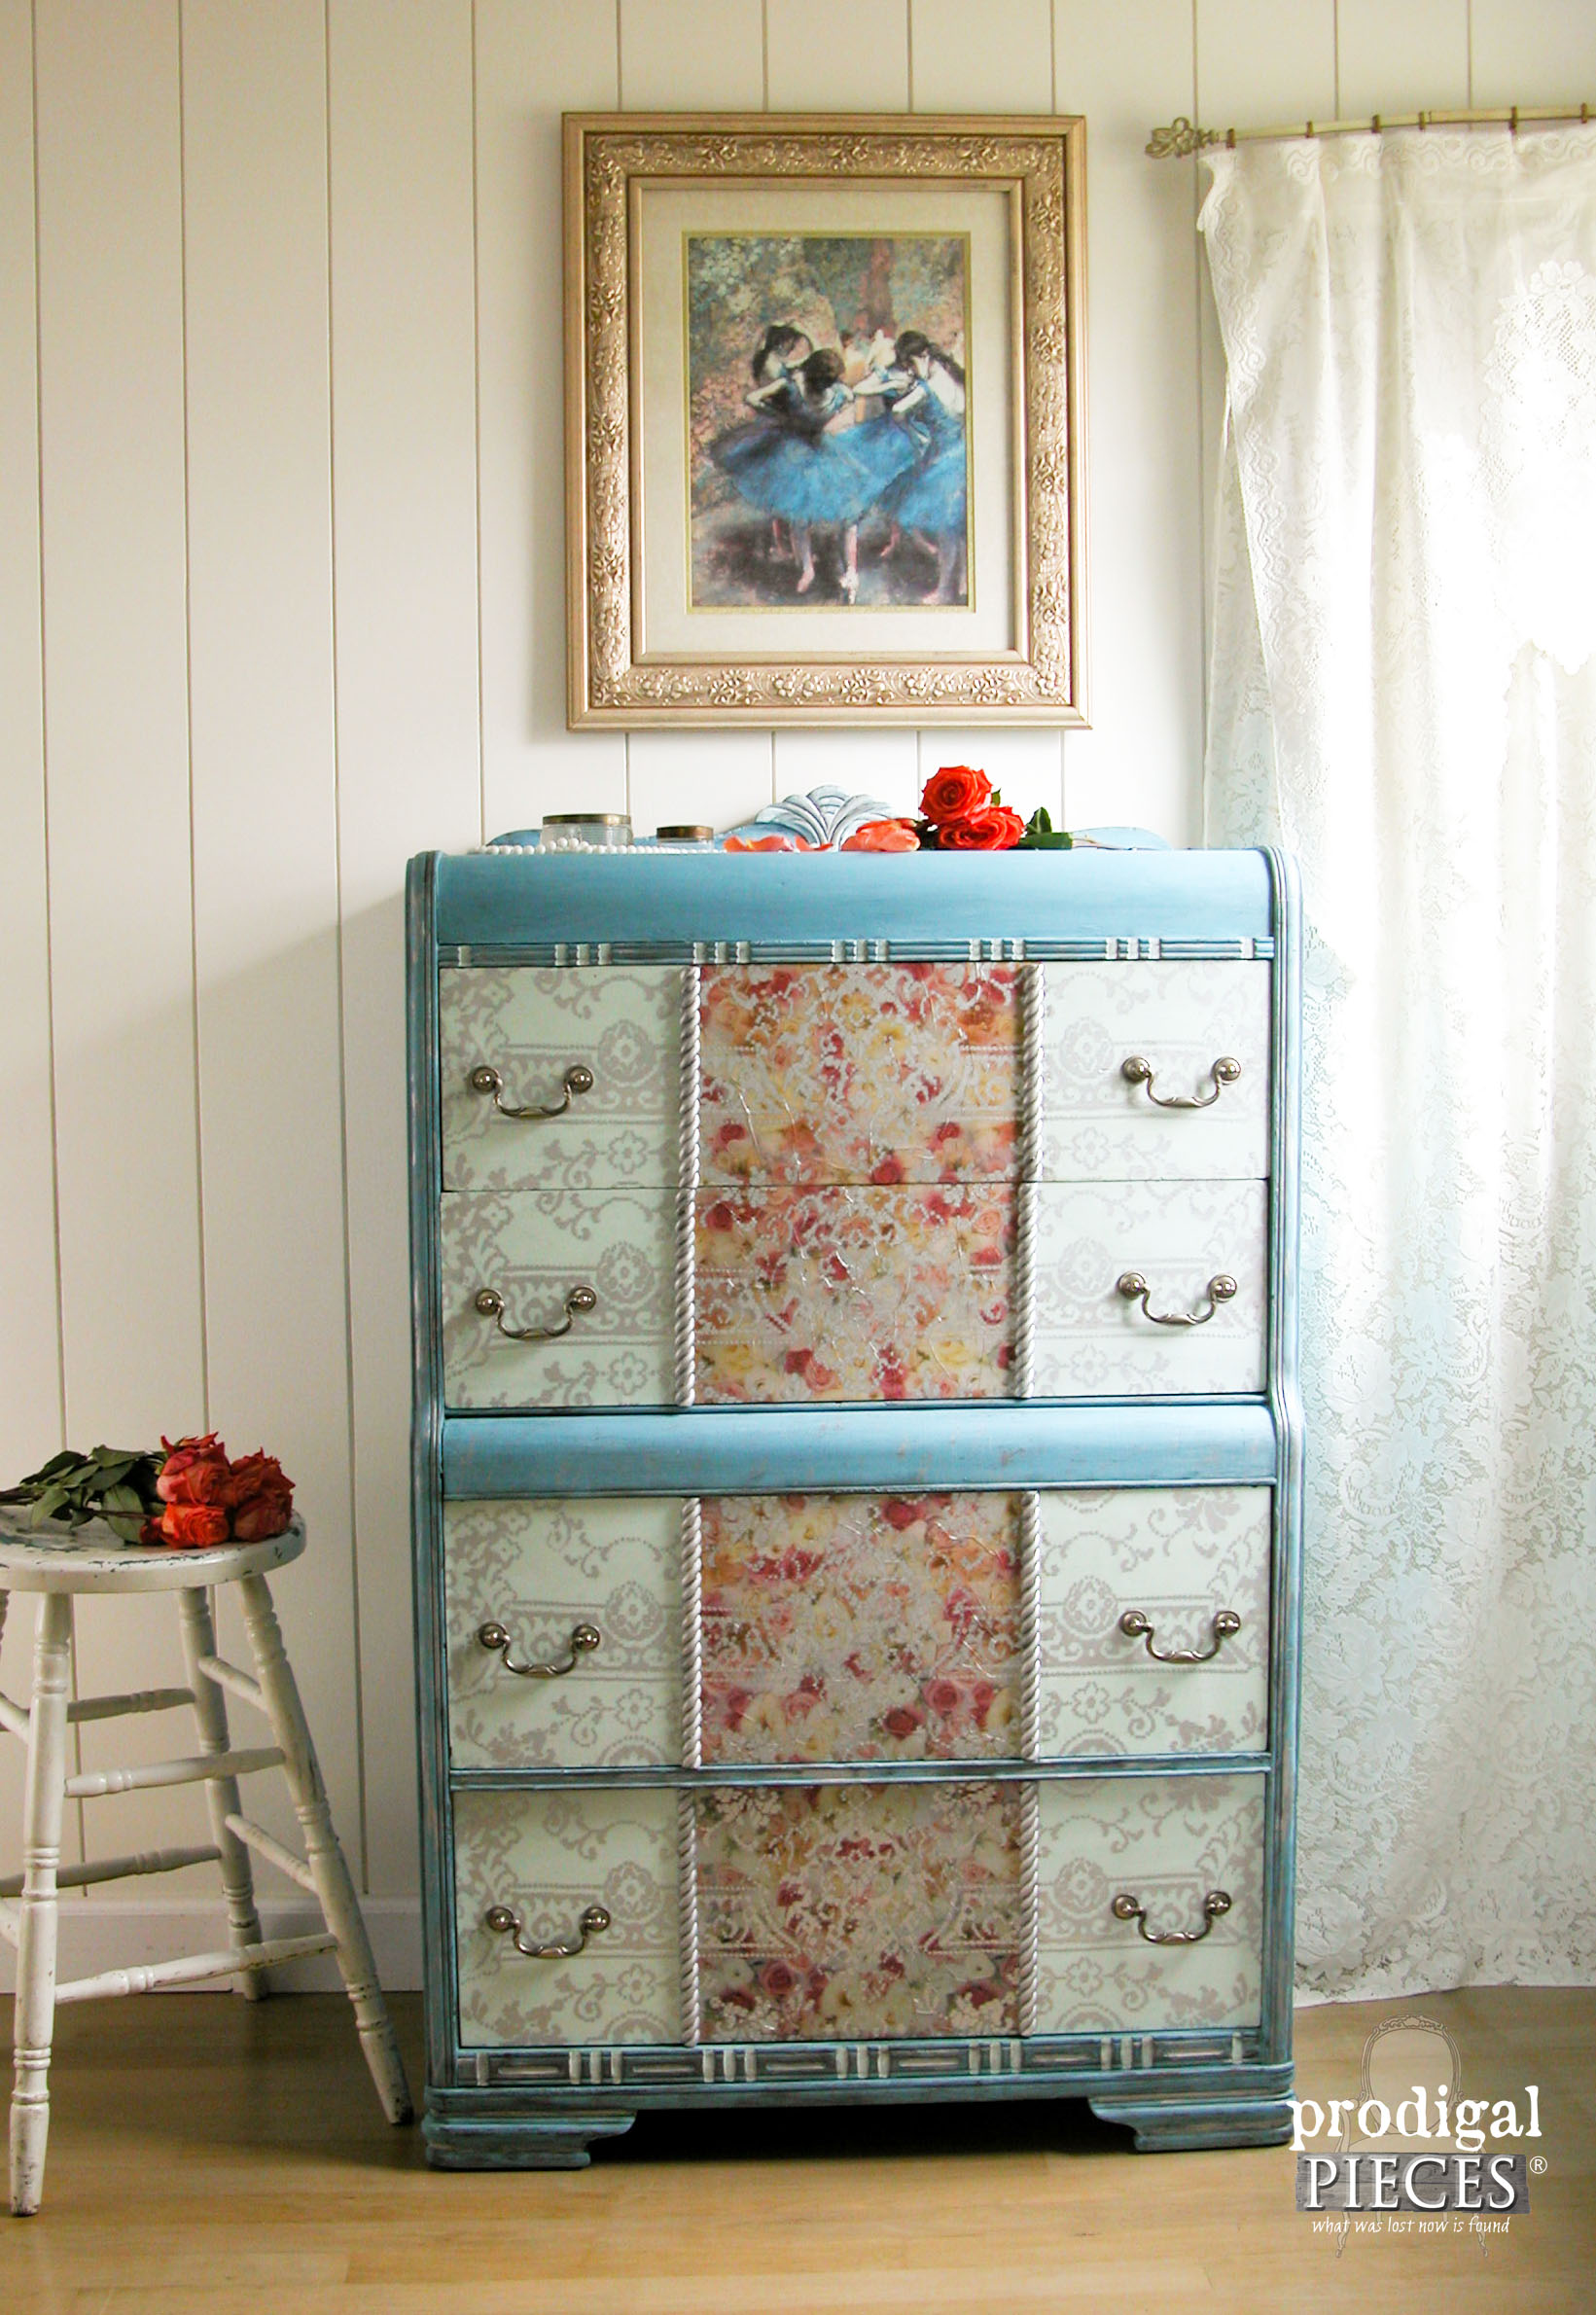 Rescued dumpster dresser to boho chic diva - Antique dresser makeover by Prodigal Pieces